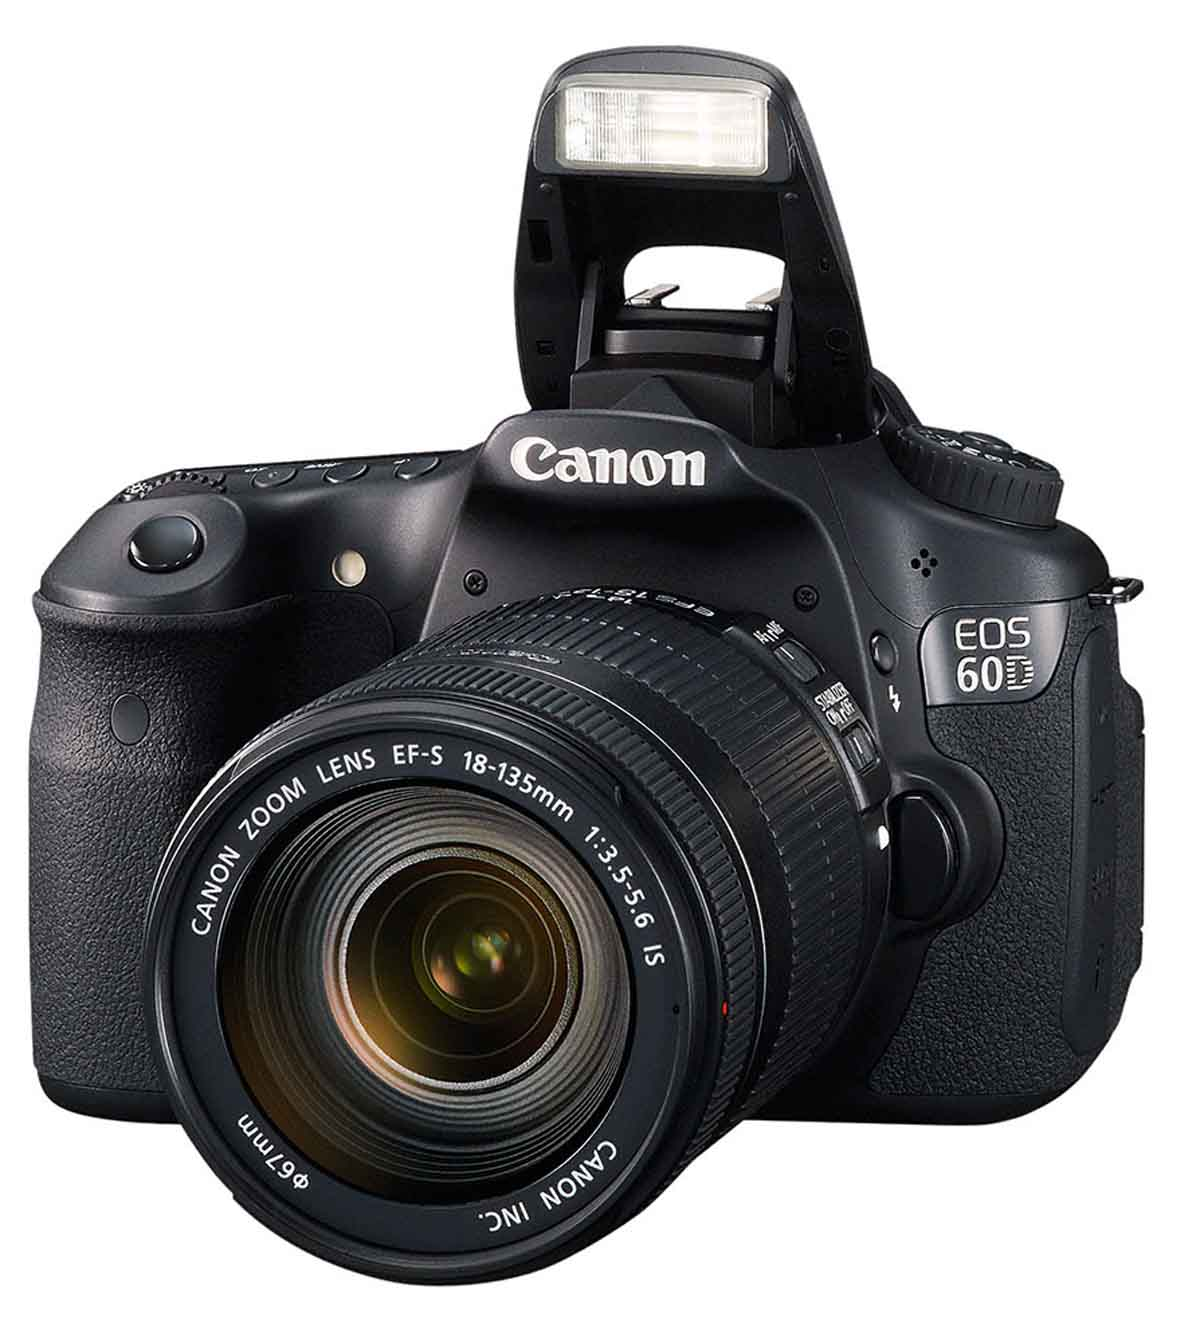 [original genuine] Canon Digital SLR camera EOS 60d (18-135) Hong Kong version